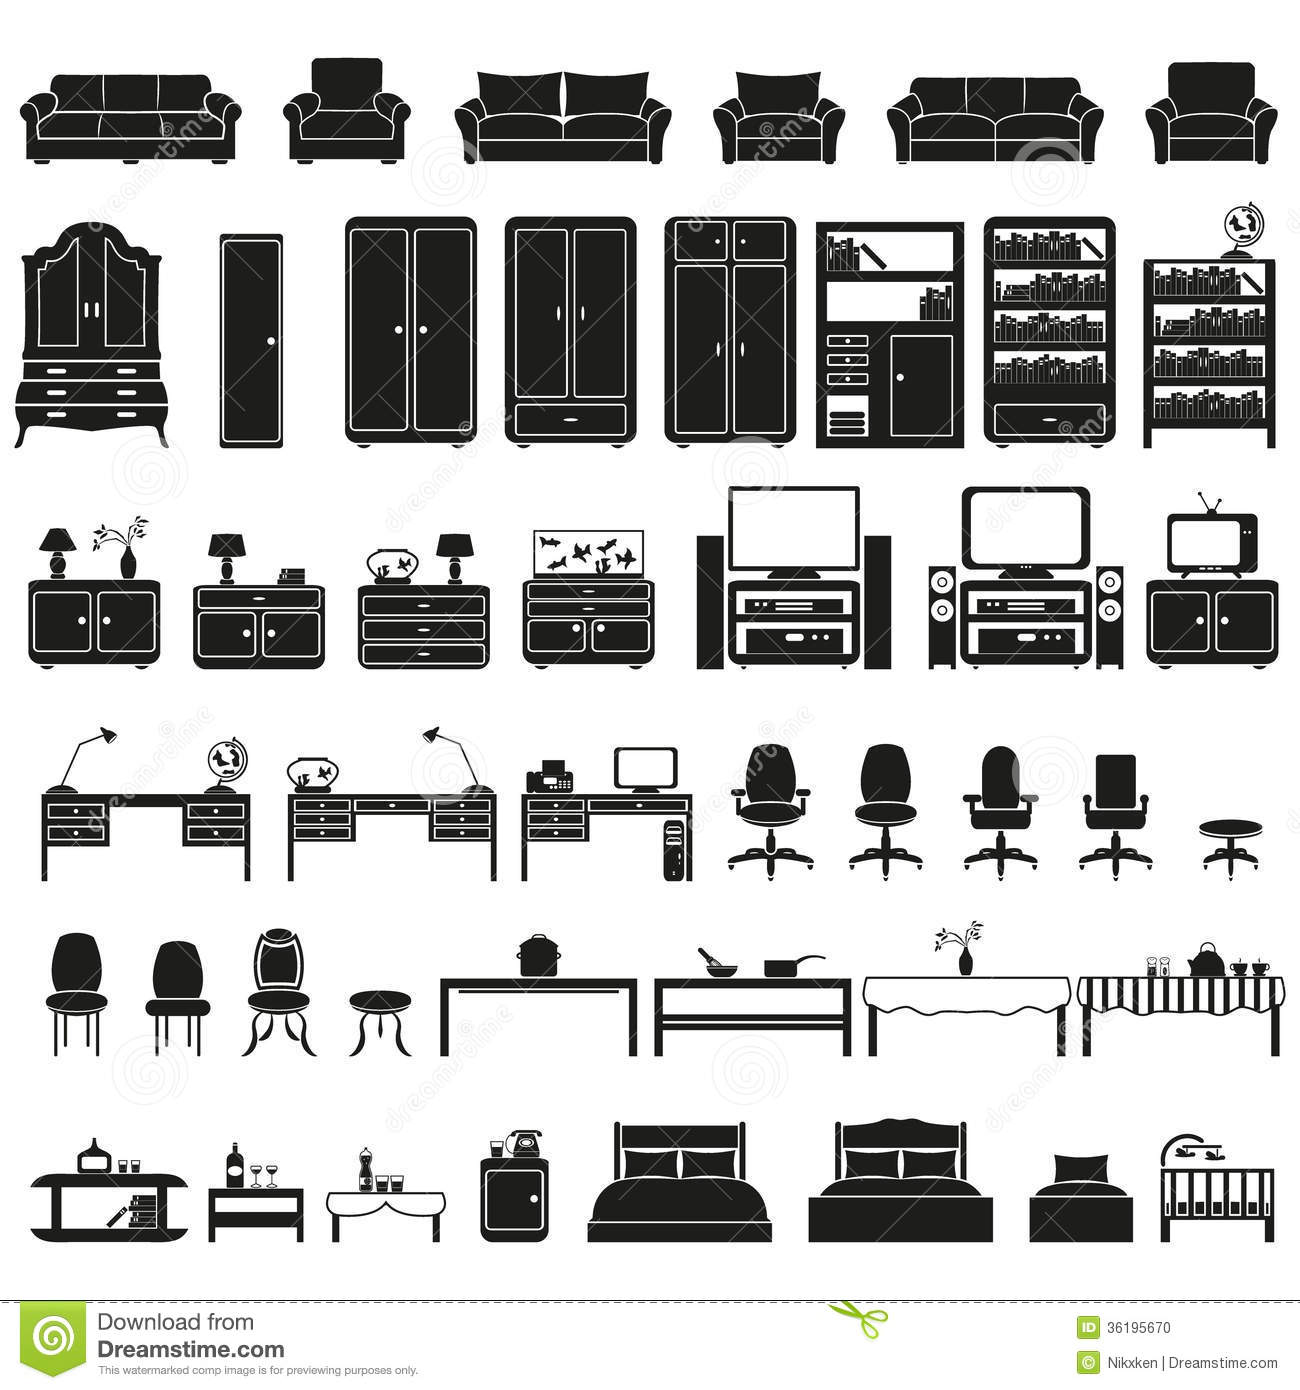 Furinture Furniture Icons Set Stock Vector